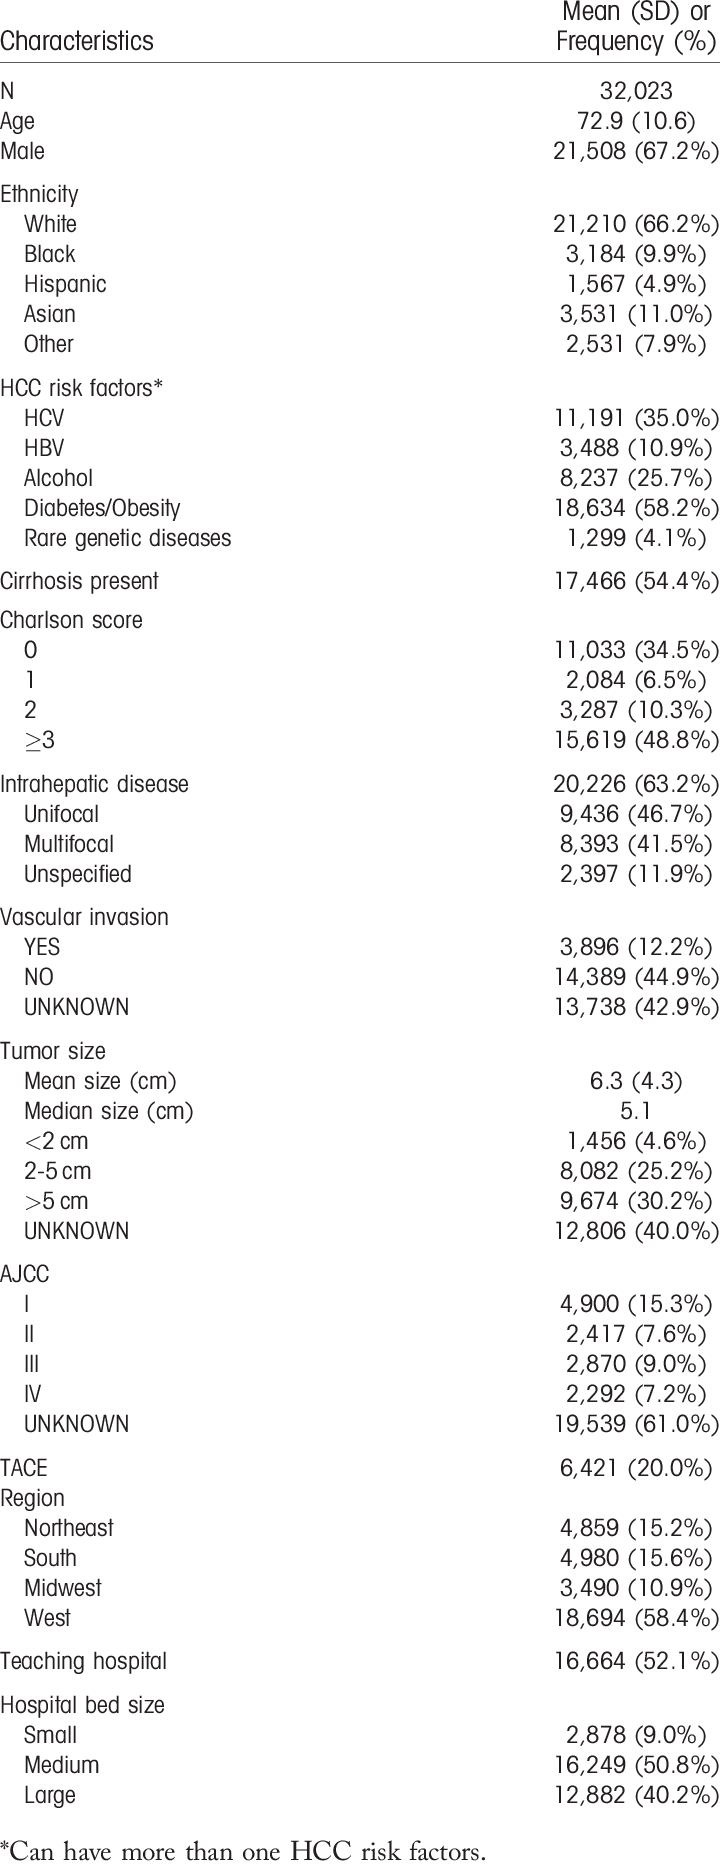 DEMOGRAPHICS AND TUMOR CHARACTERISTICS OF PATIENTS WITH